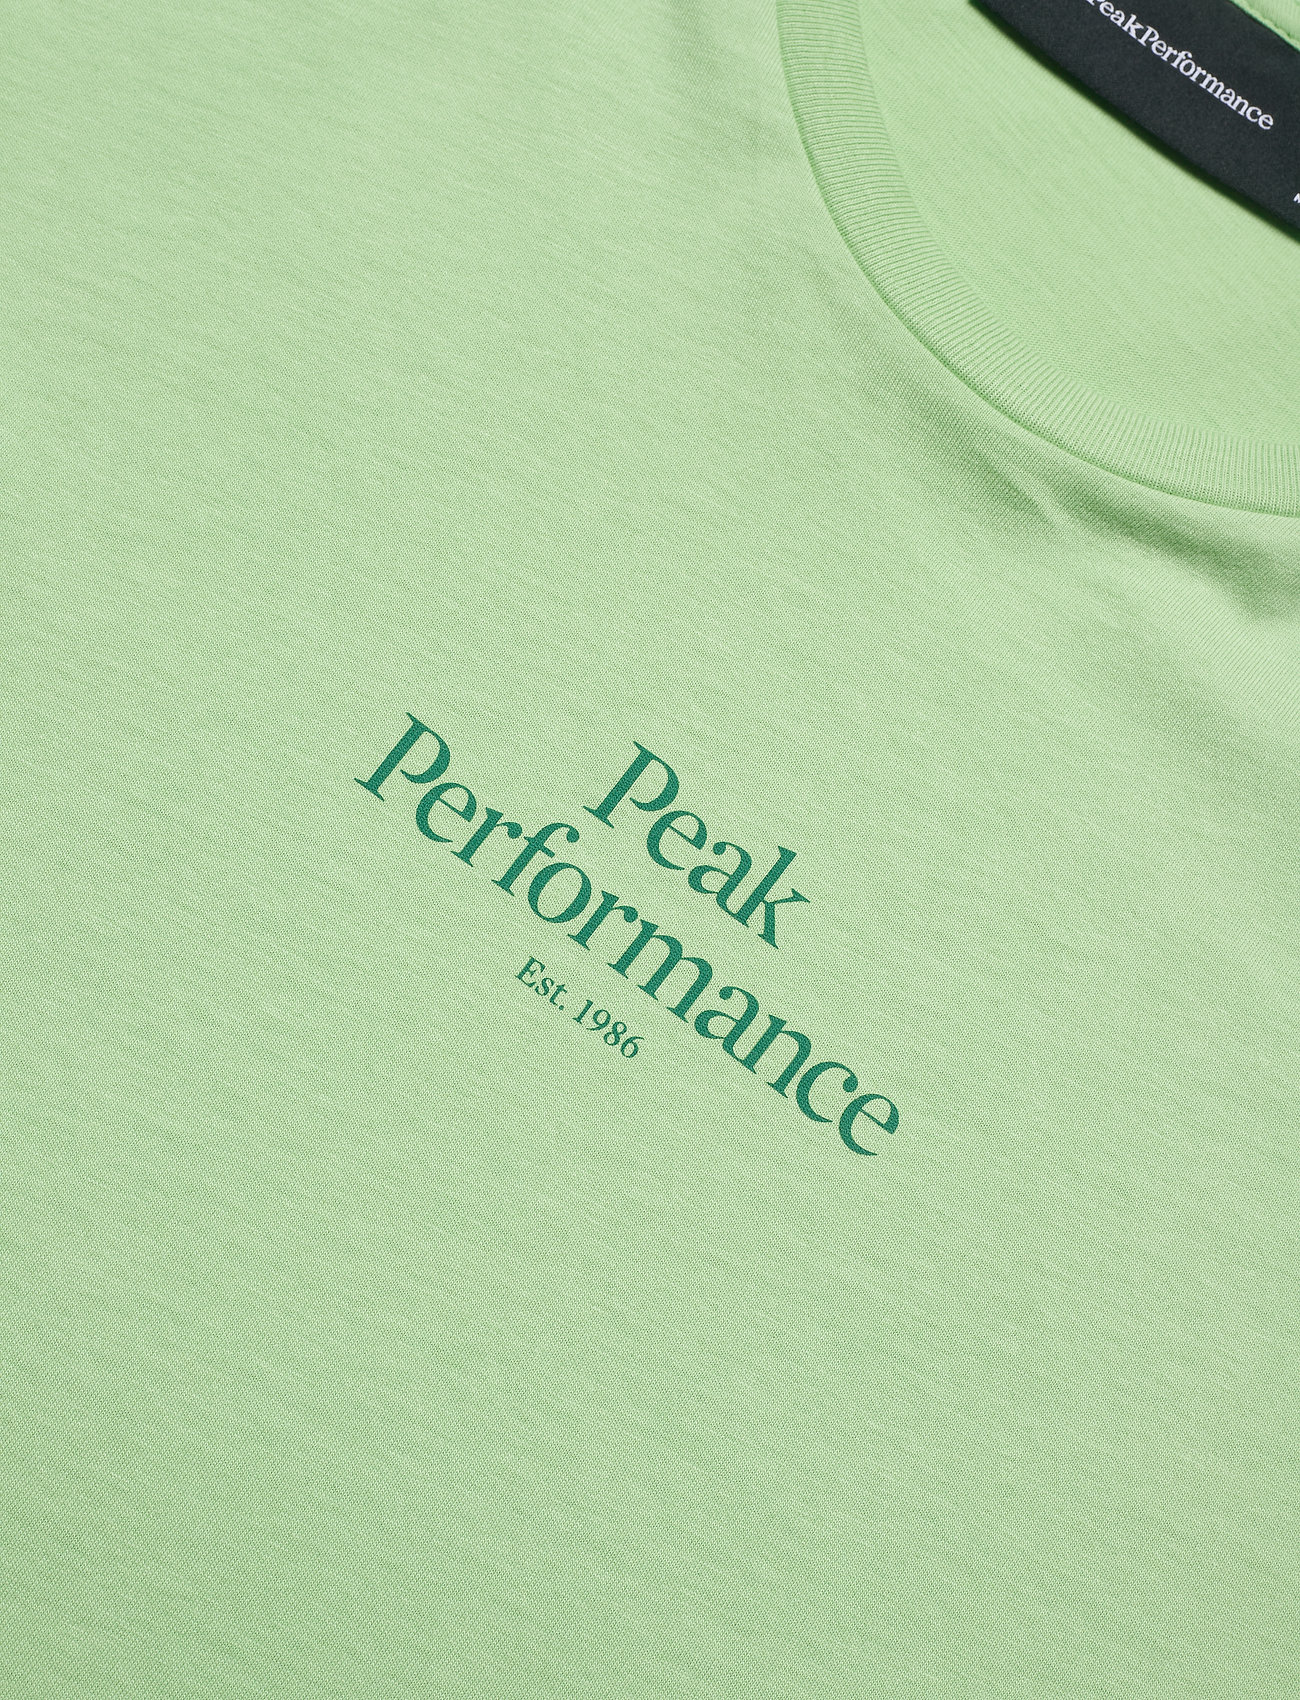 Peak Performance M Original Light Tee - T-skjorter PALE HORIZON - Menn Klær